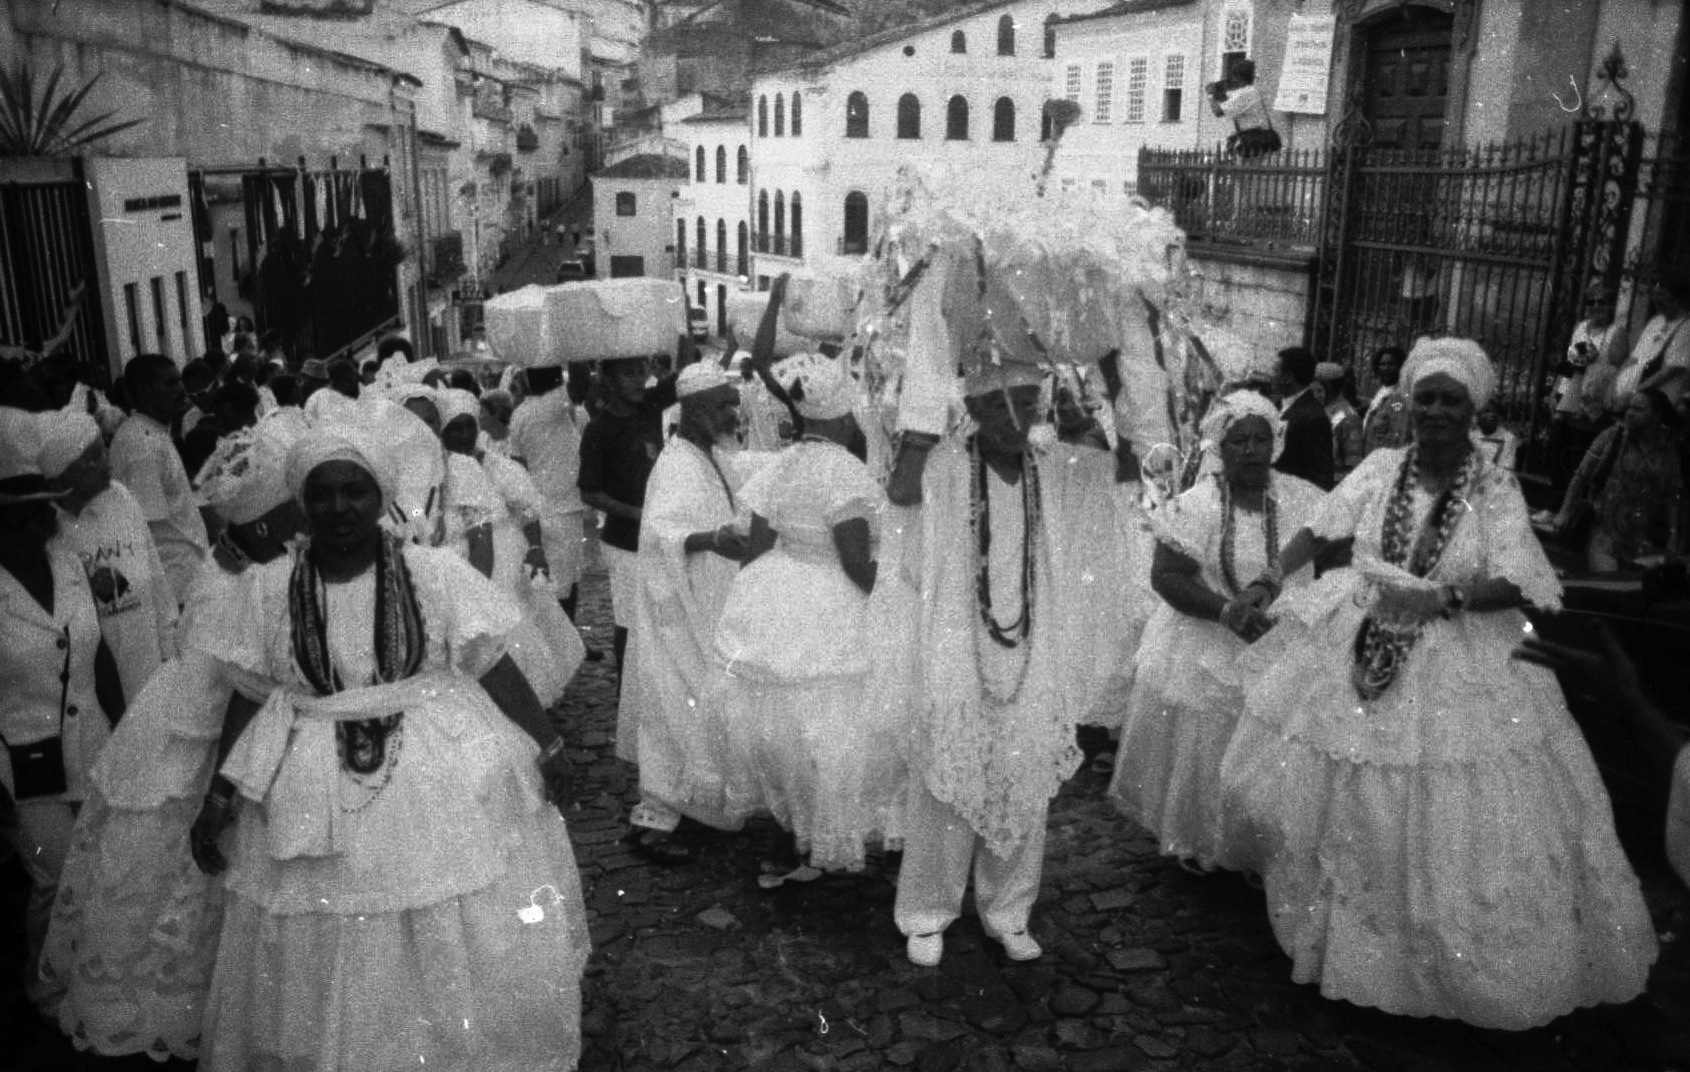 The people of the saint in Brazil during Candomblé. Photo by Lázaro Roberto.